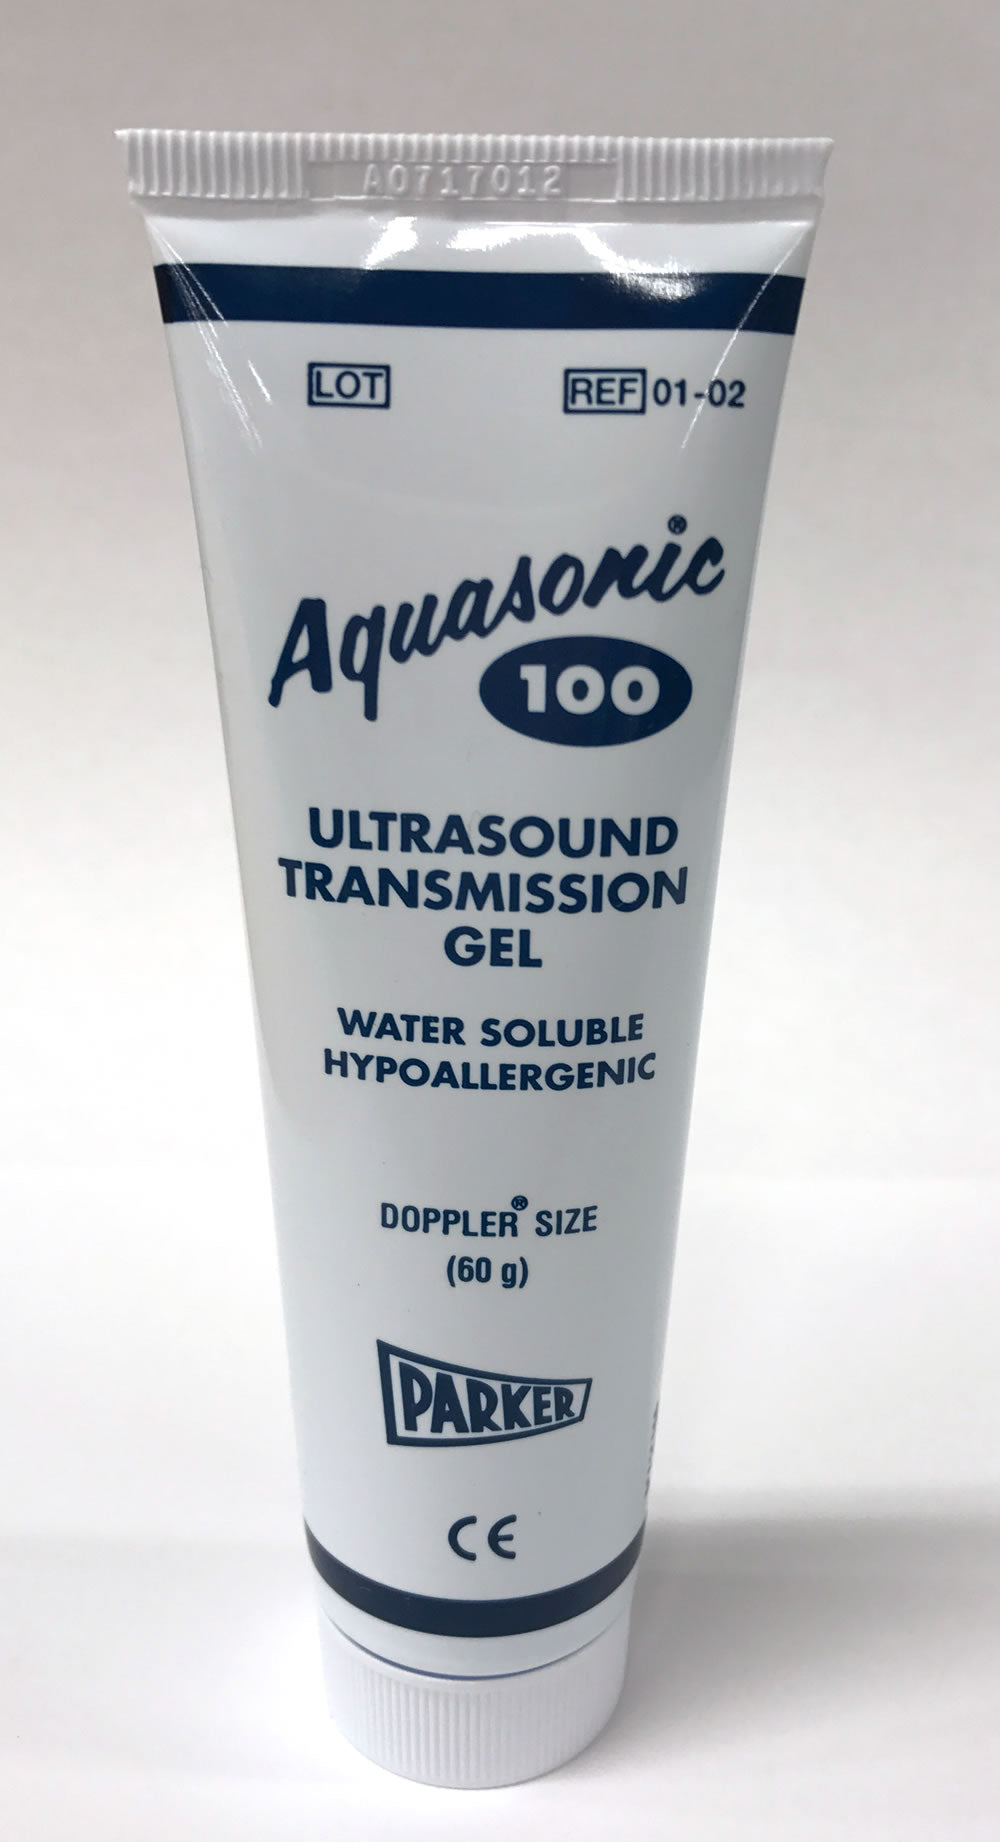 Aquasonic 100 Gel, 01-02, Sterile, 60g (12 per box)